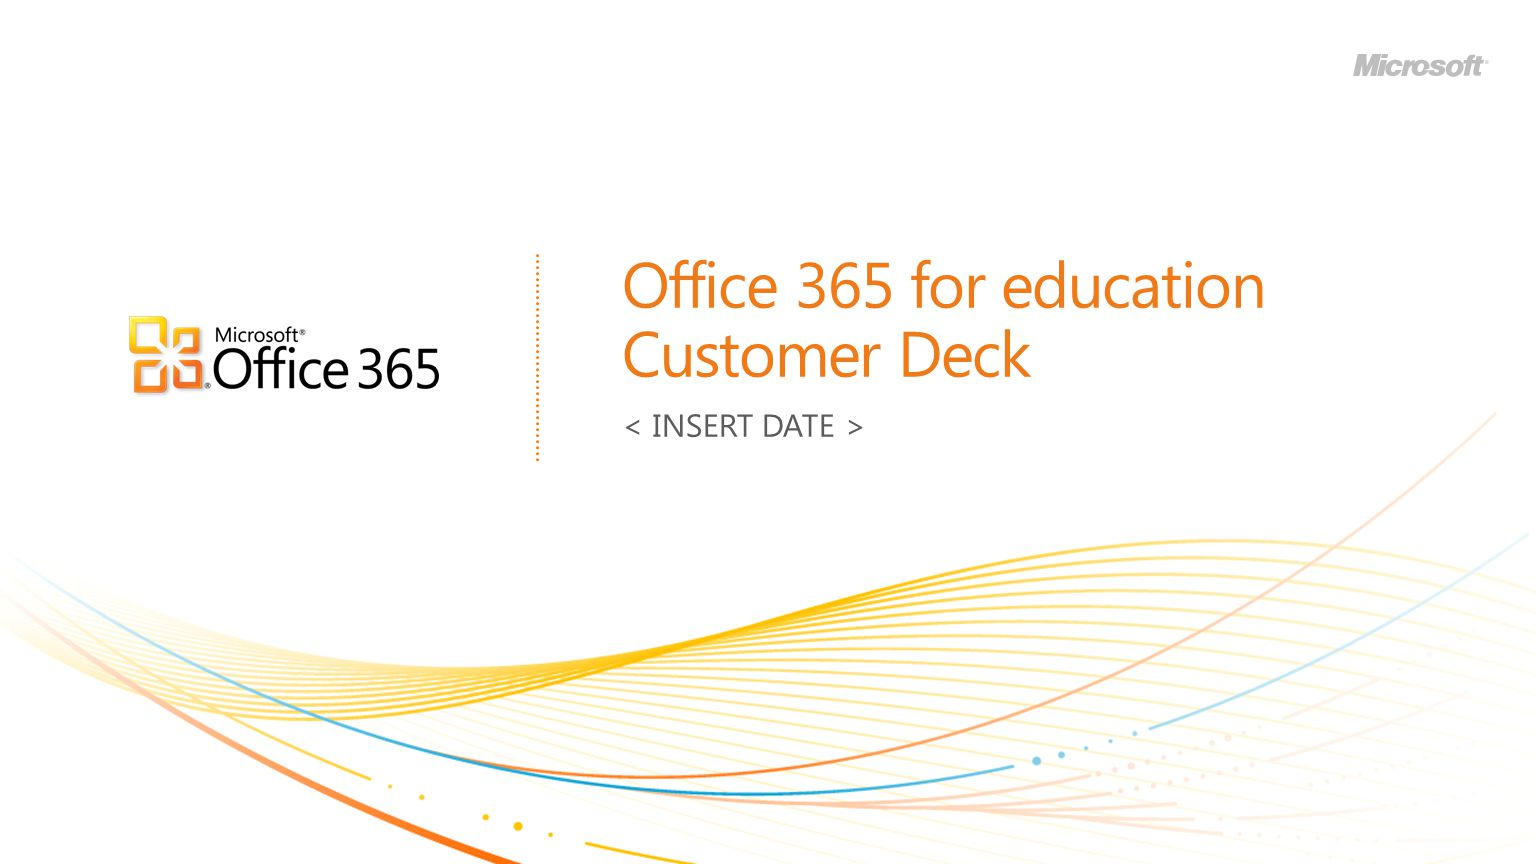 Office 365 for education Customer Deck